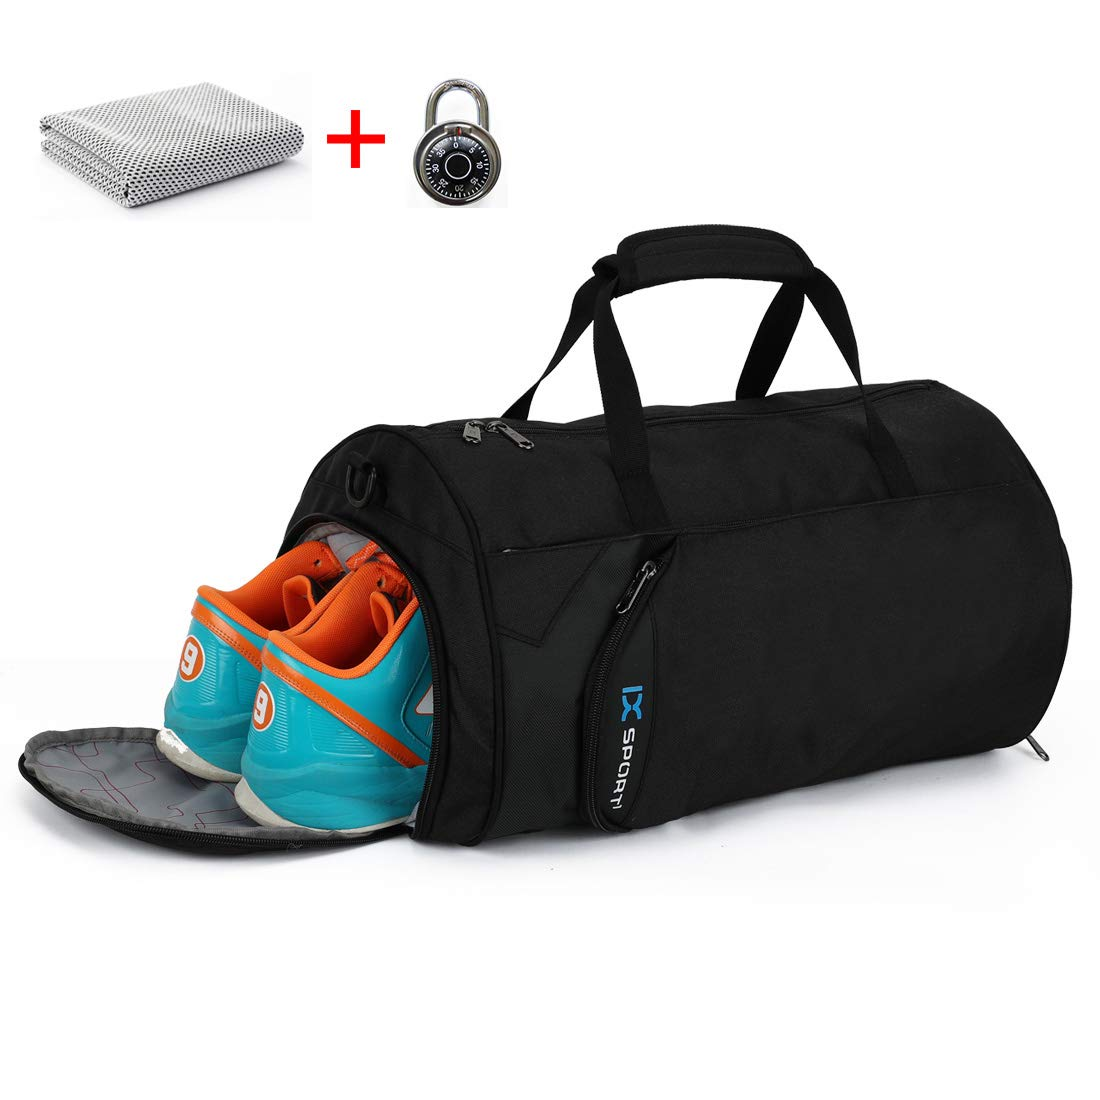 INOXTO Fitness Sport Small Gym Bag with Shoes Compartment Waterproof Travel Duffel Bag for Women and Men (black-Set 3in1)